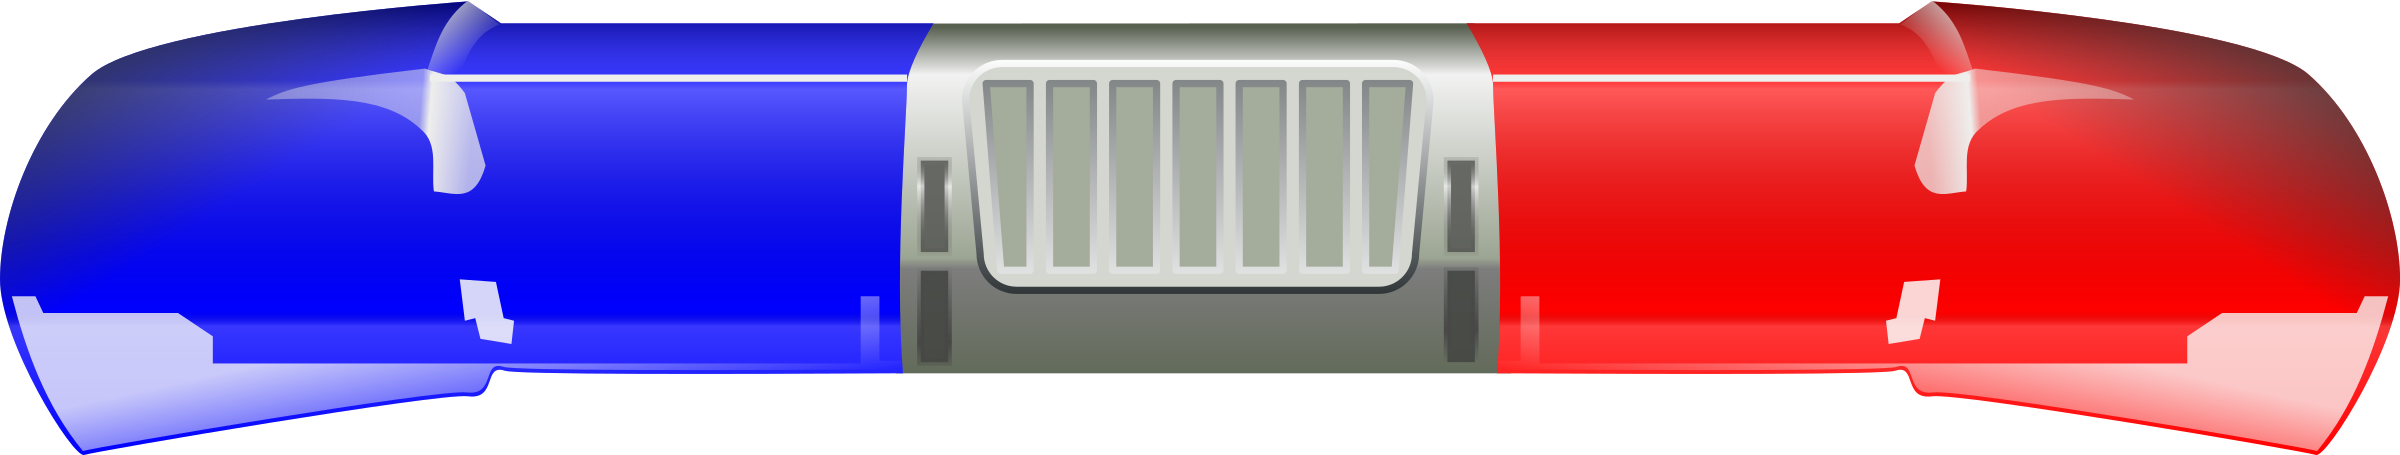 police car light bar clipart - Police Siren PNG